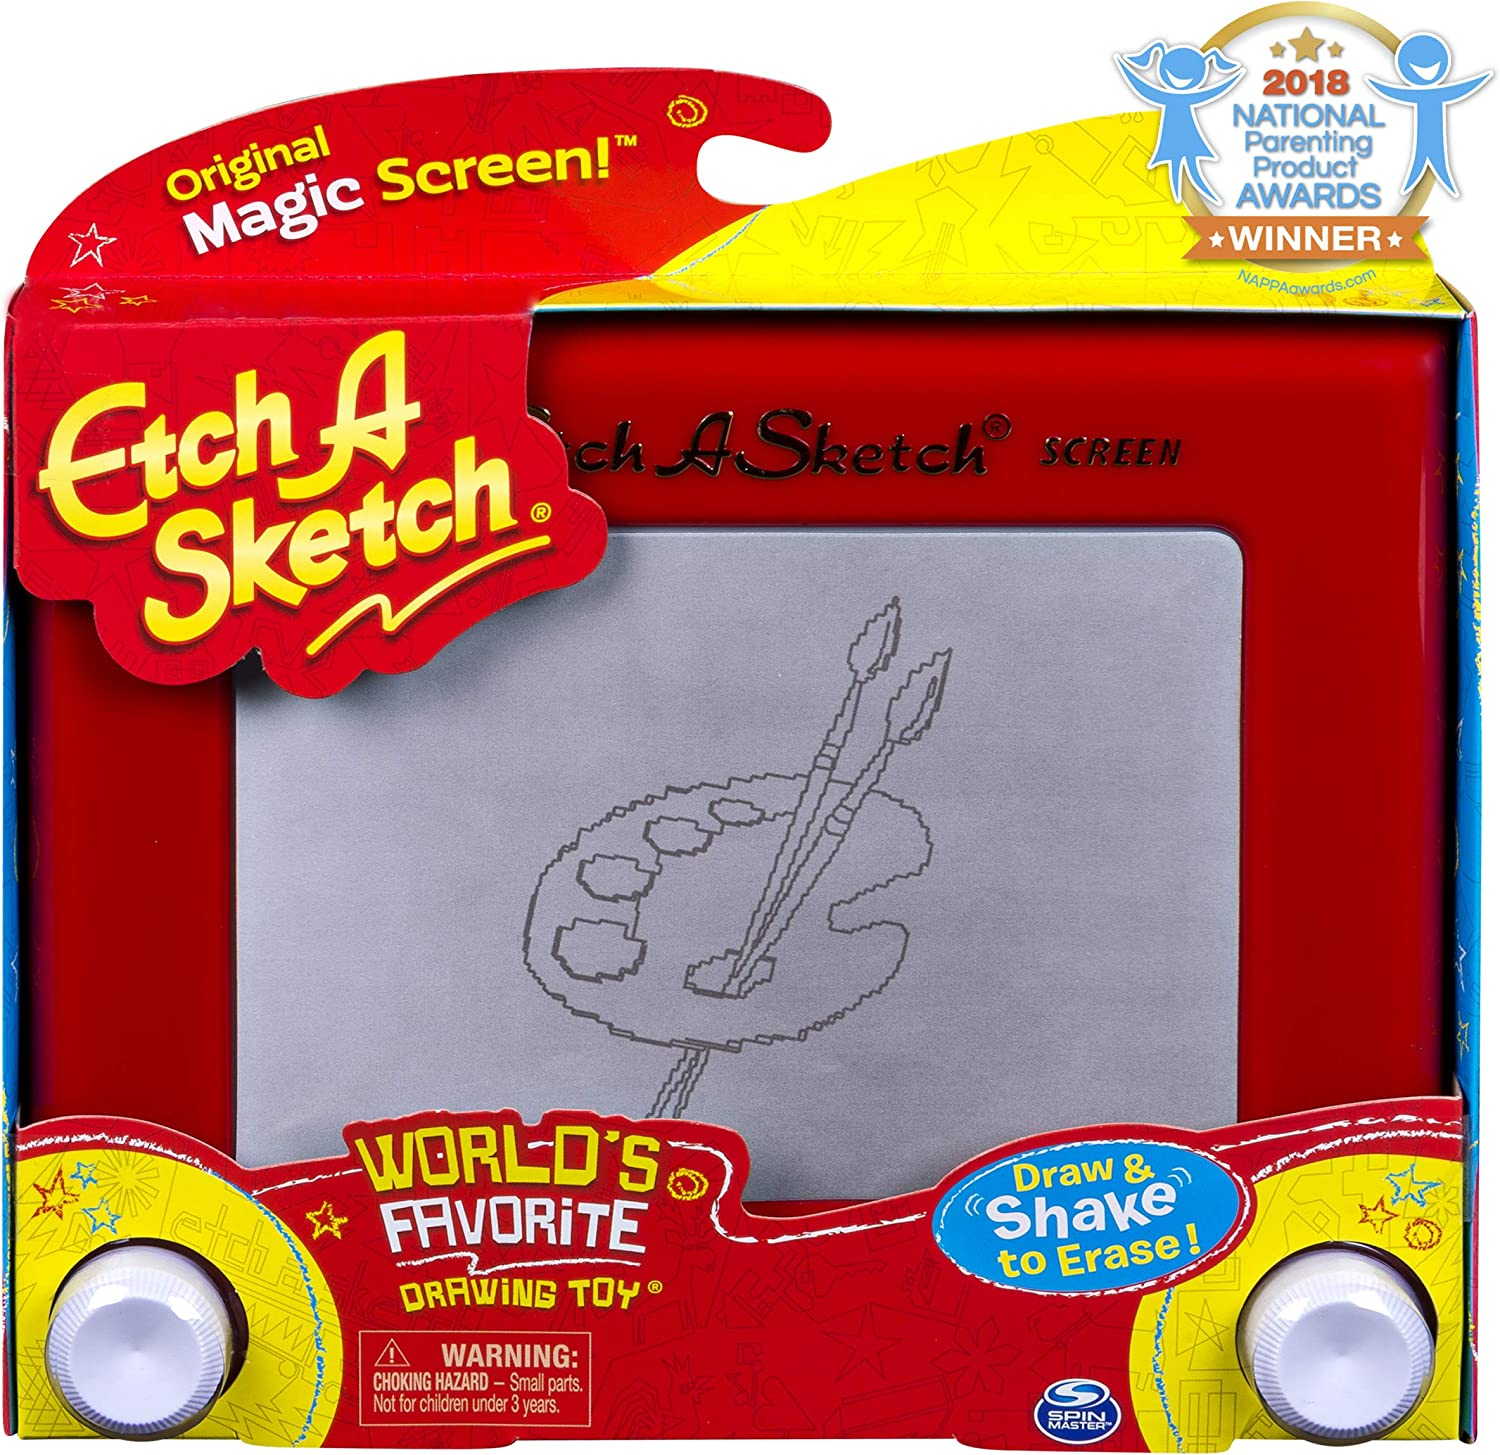 Etch A Sketch, Classic Red Drawing Toy with Magic Screen, for Ages 3 and Up, 1.63, Model:20083951-6041762